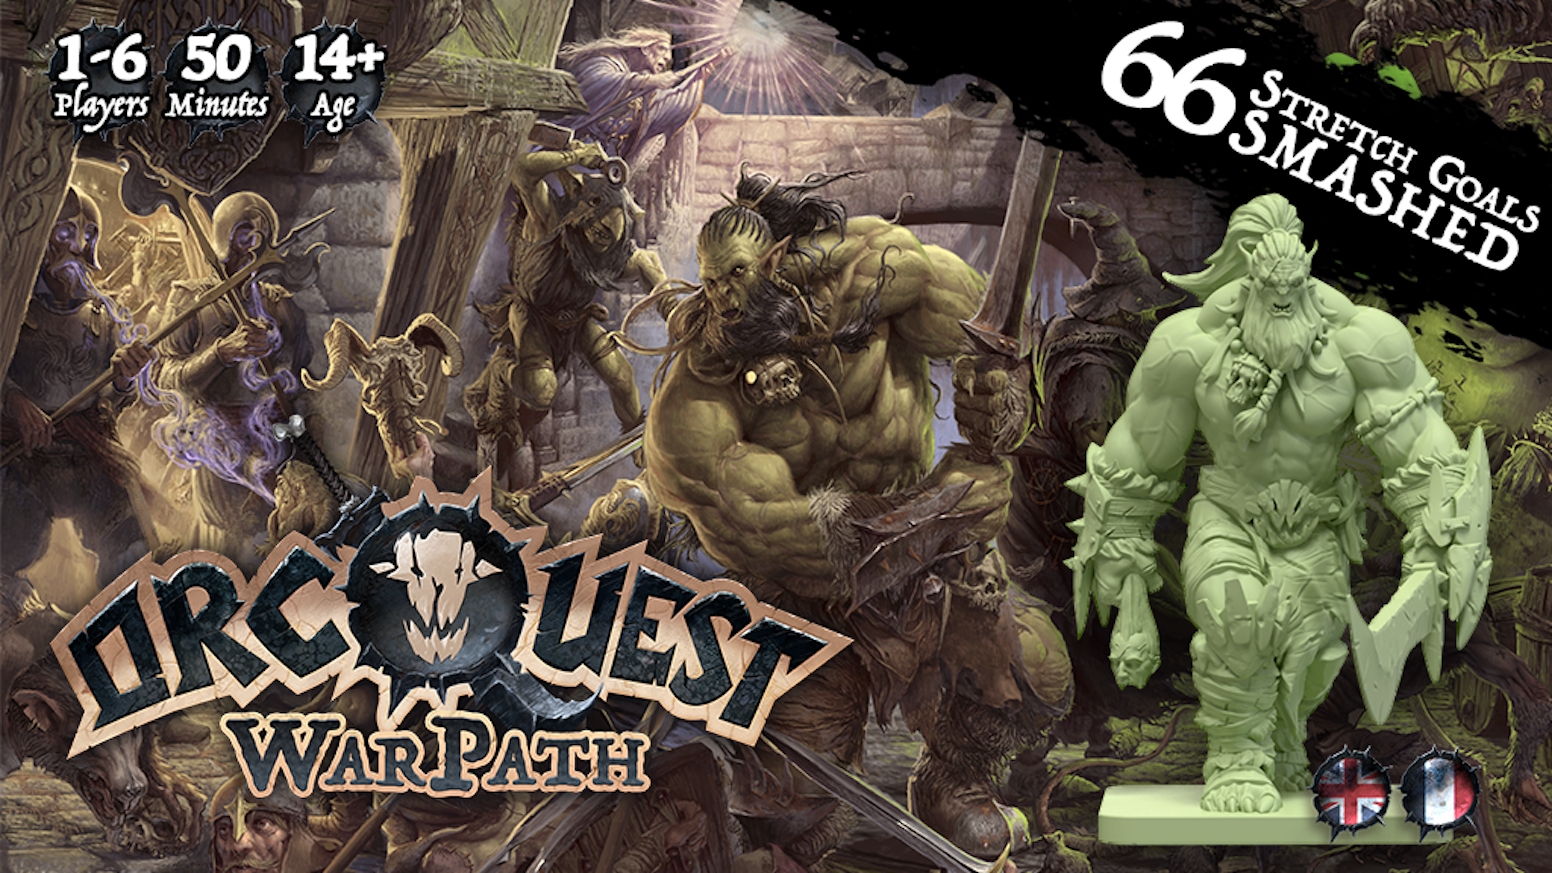 OrcQuest WarPath - The Boardgame